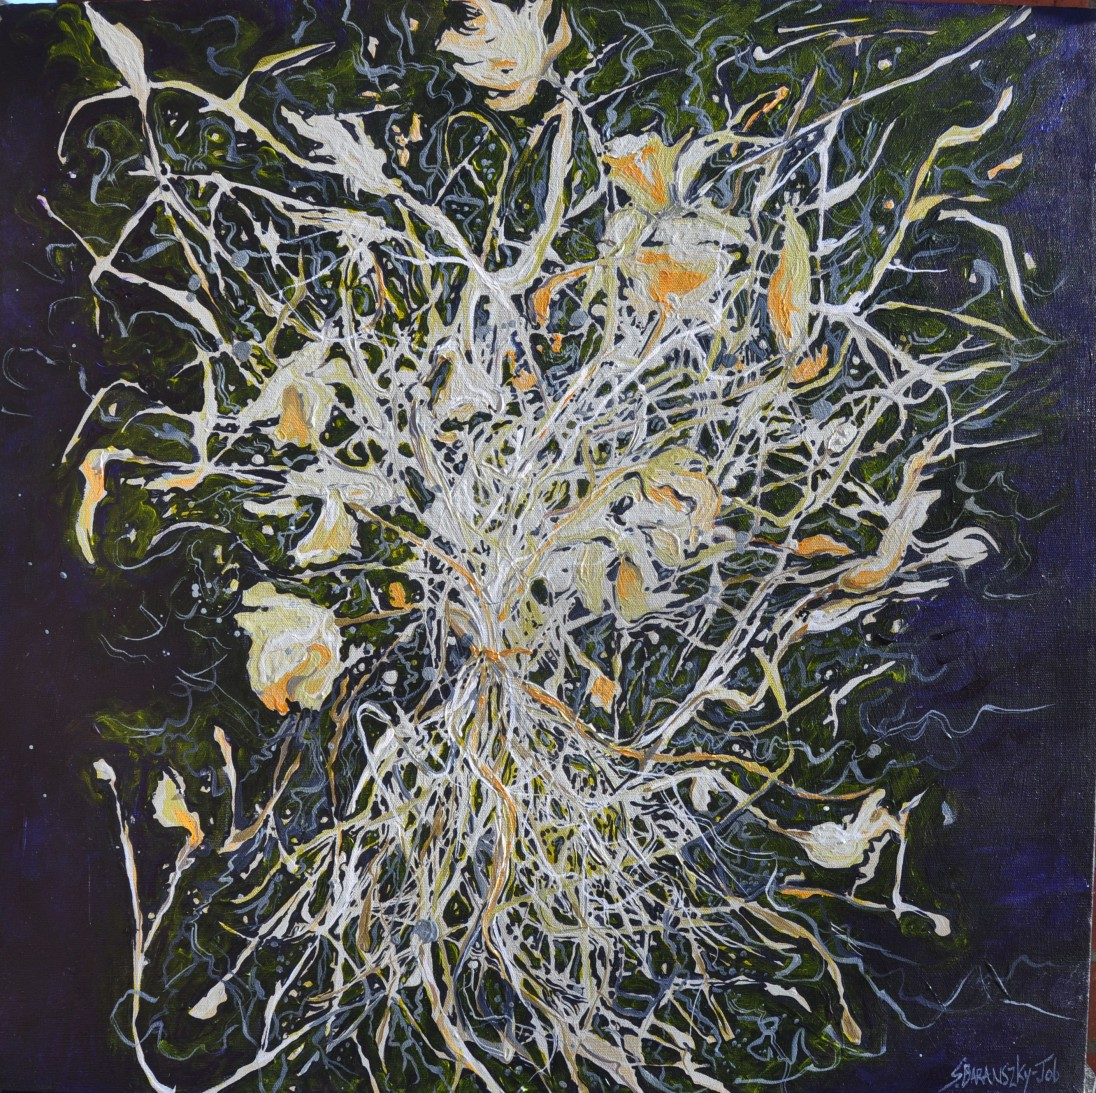 Night After Tangle, 24 by 24, Acrylic on Canvas 750.00